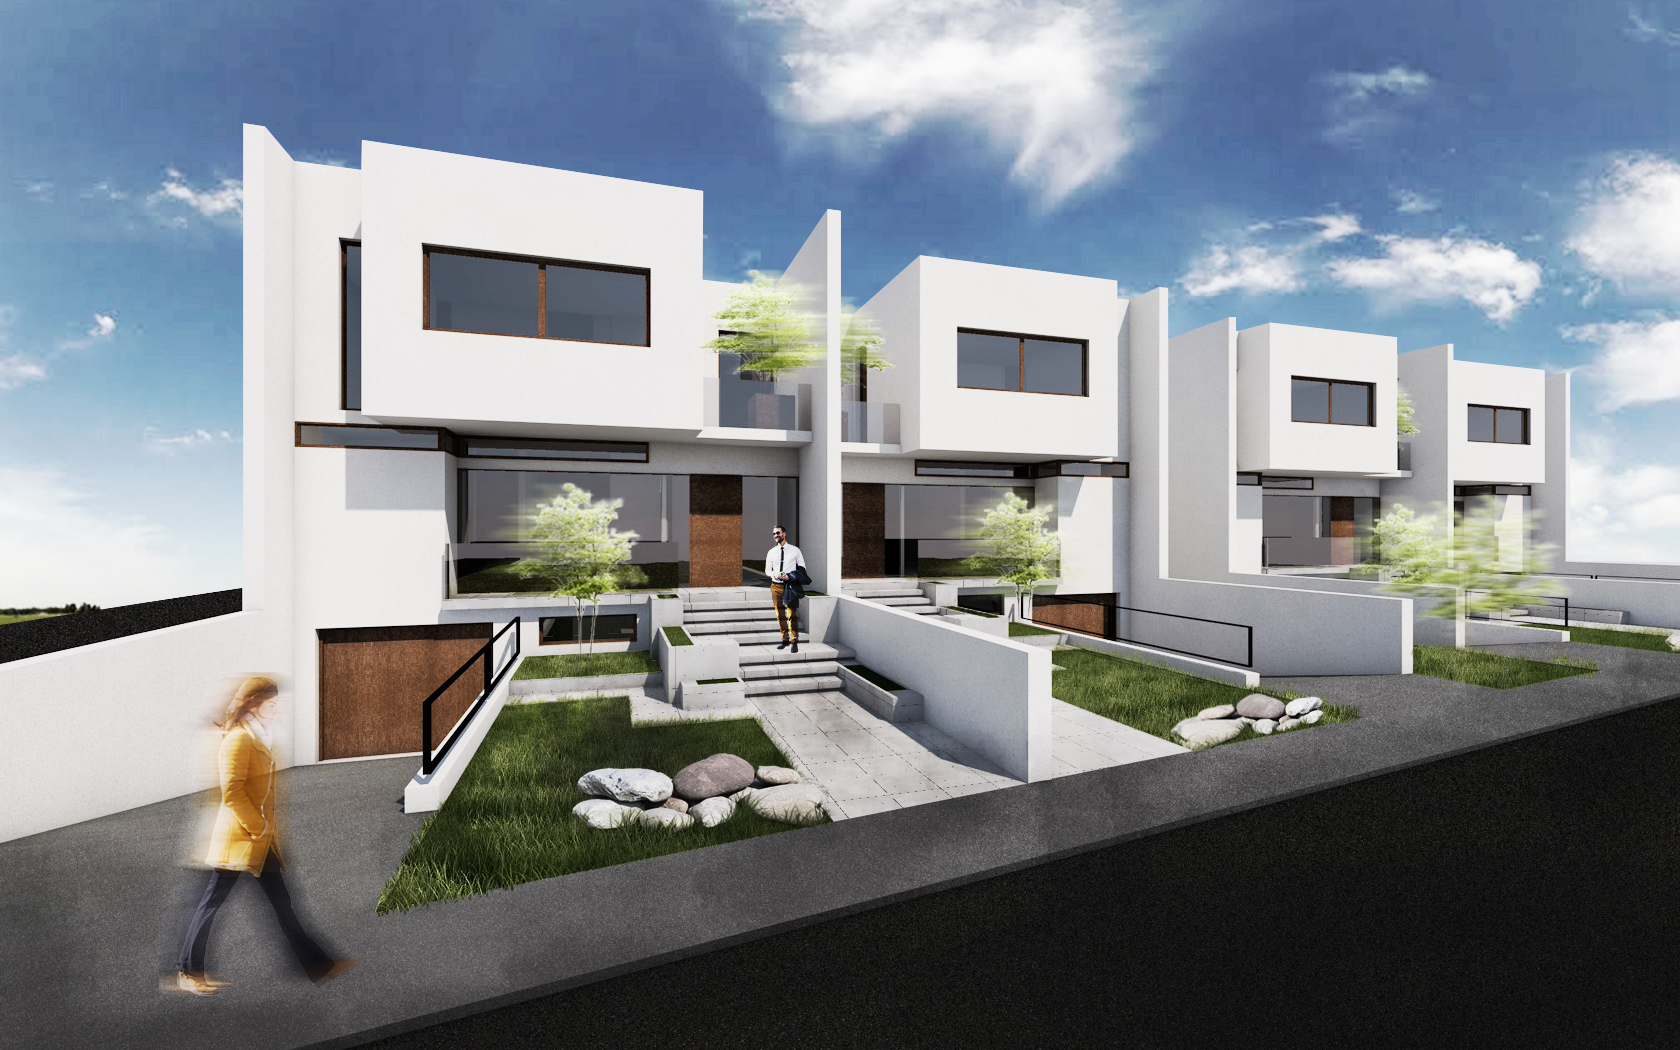 Duplex house concept 01 arb r shala architects - What is duplex house concept ...